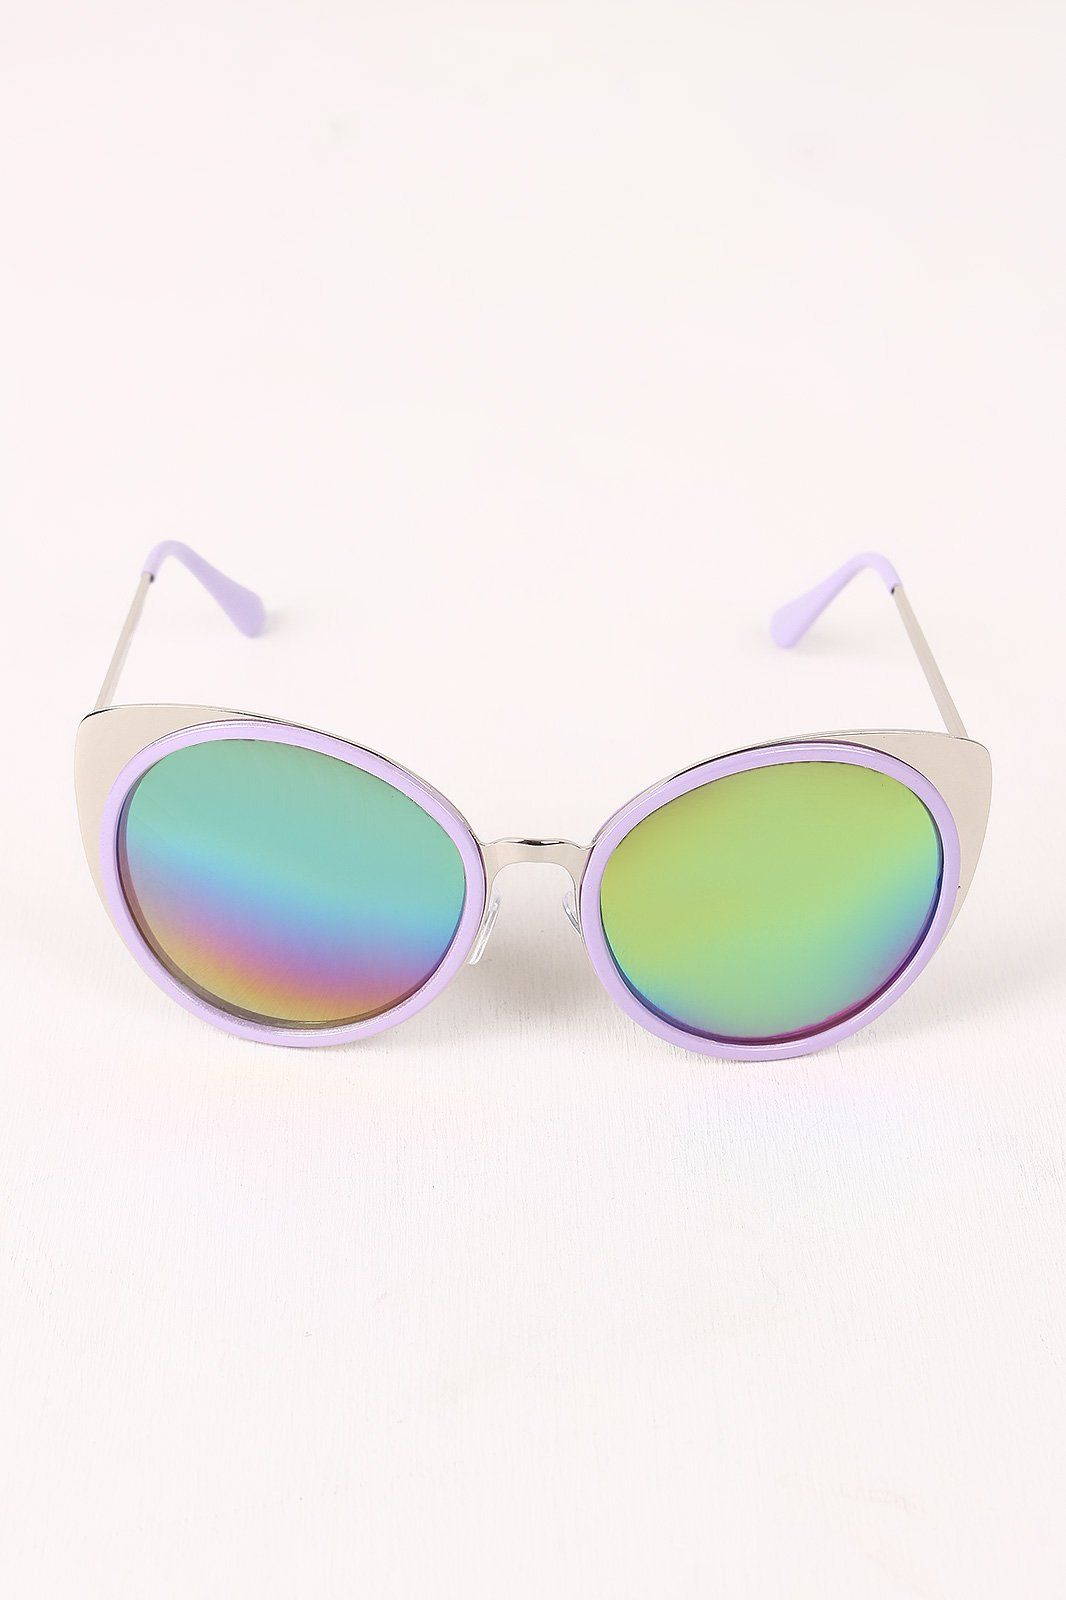 401b138a9b6c These sunglasses feature a cat eye shape metallic with contrast color  frame